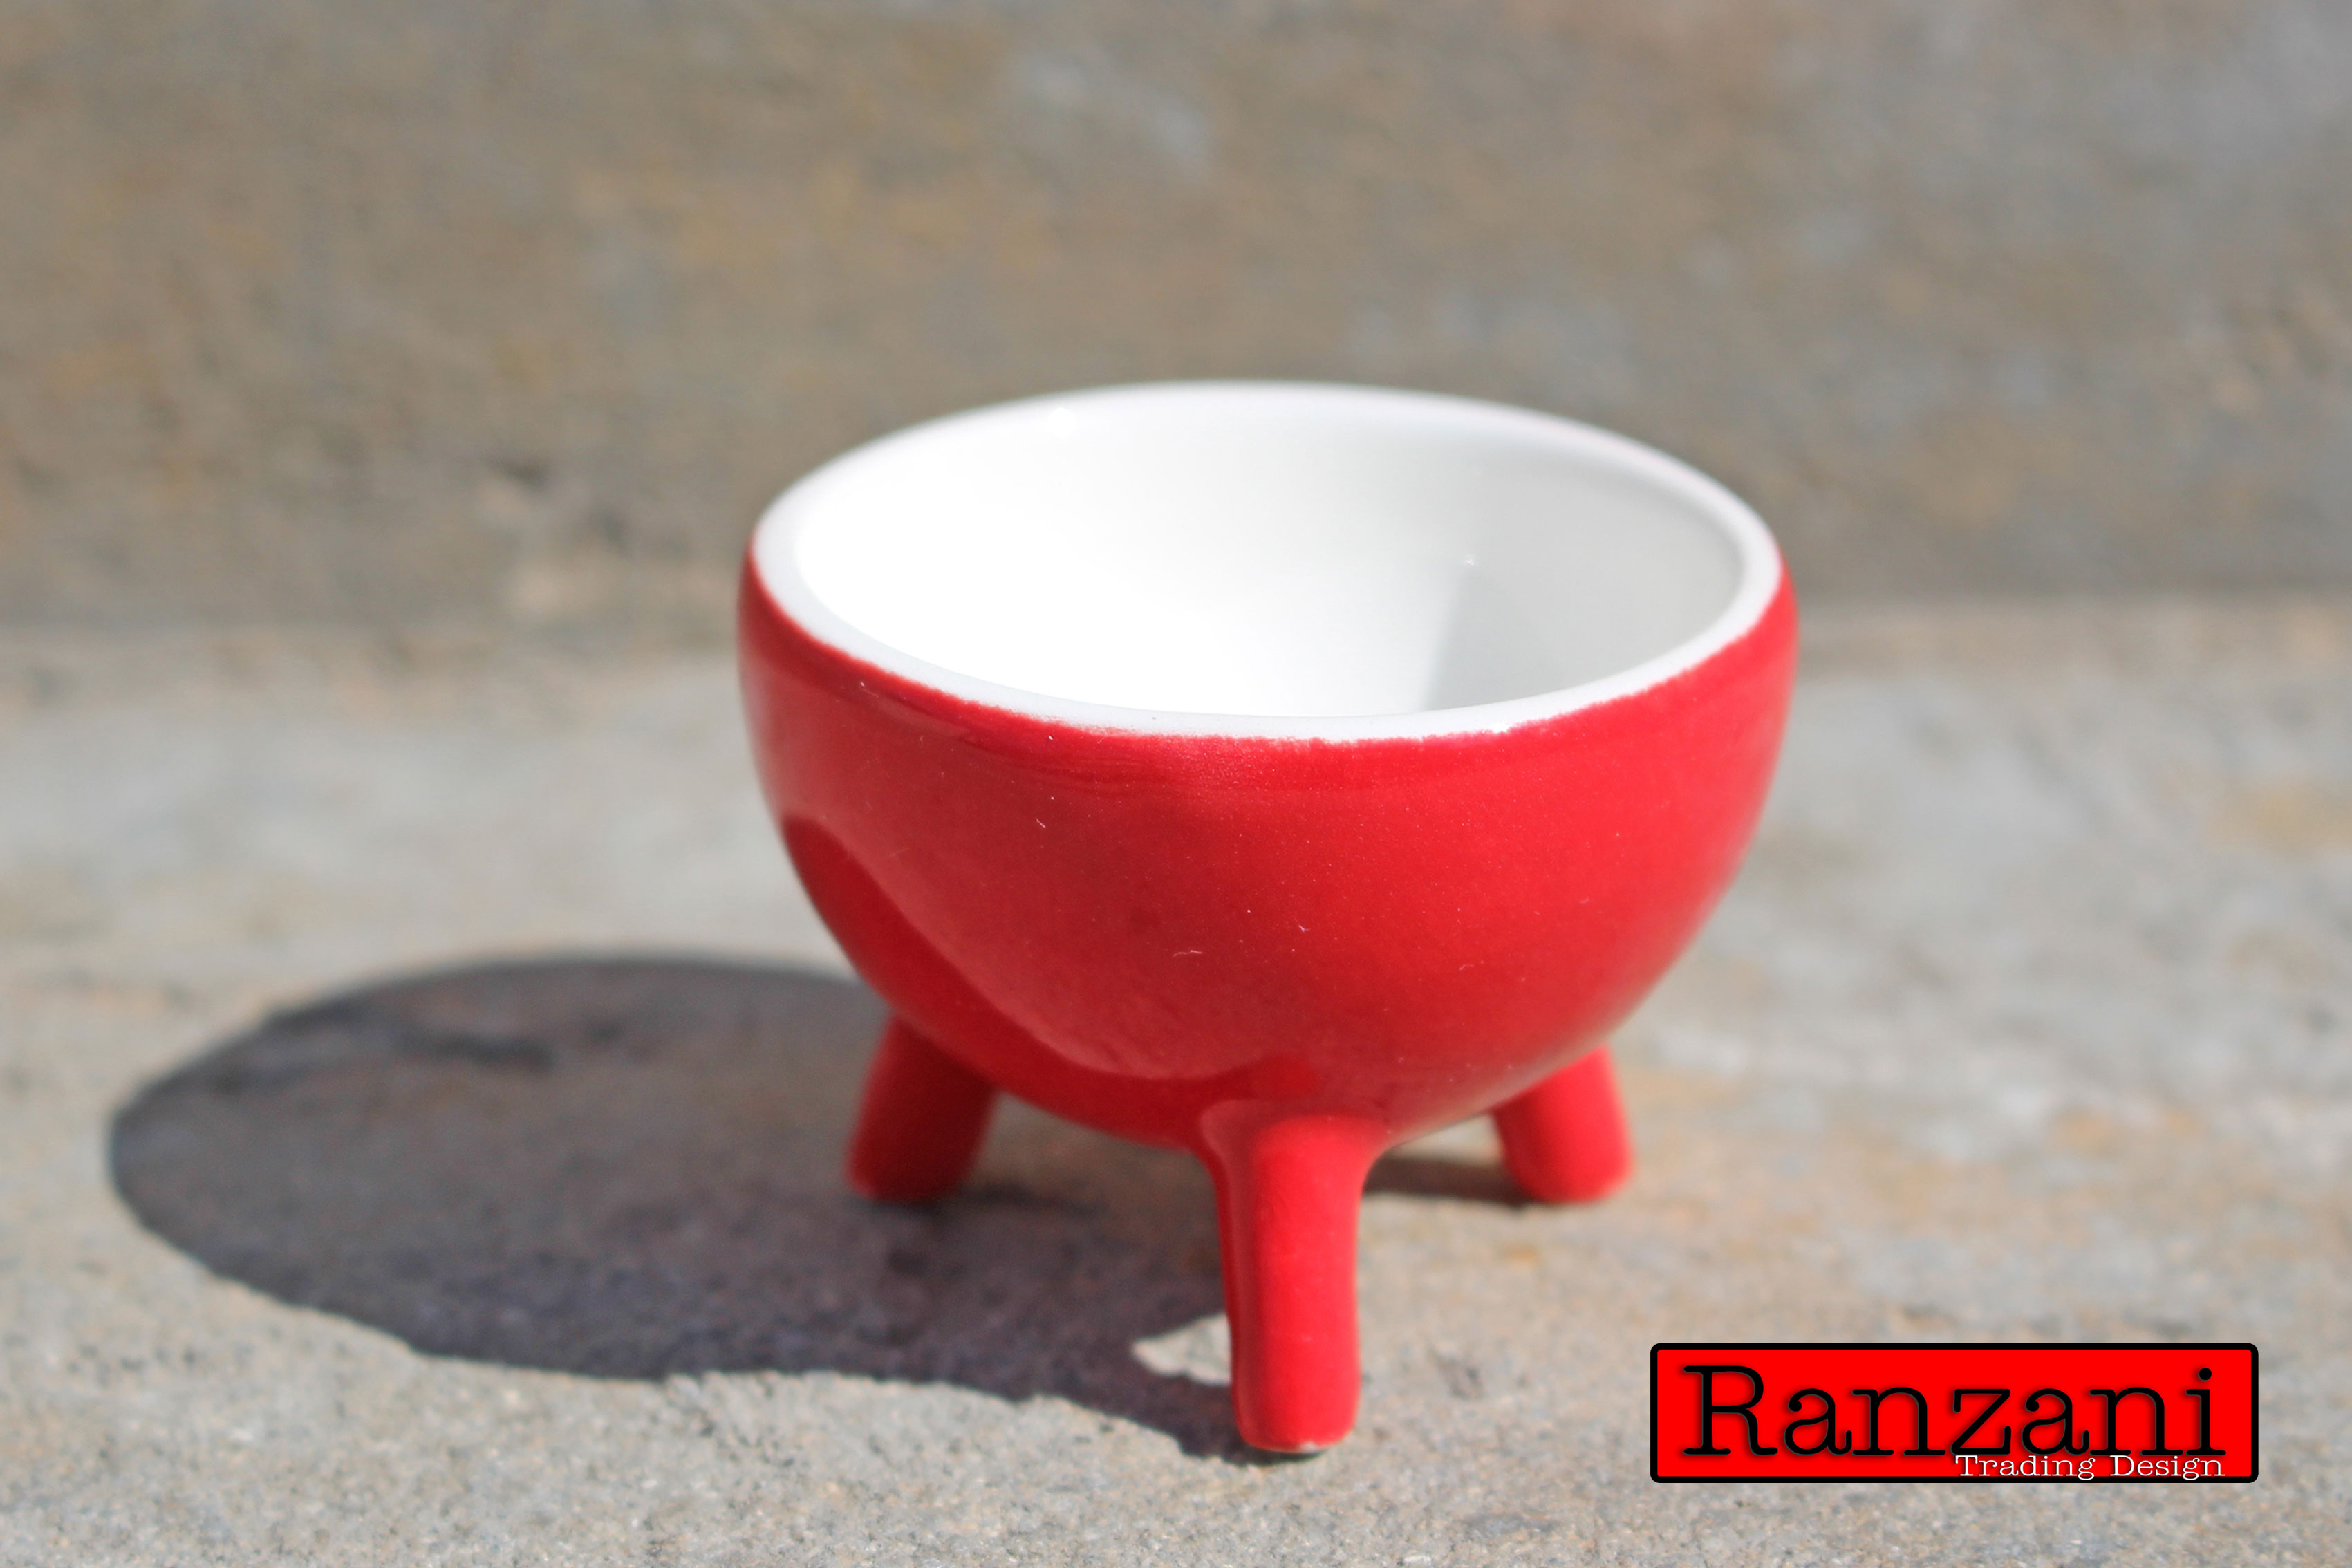 Ranzani Africa Egg Potjie in red with gloss.